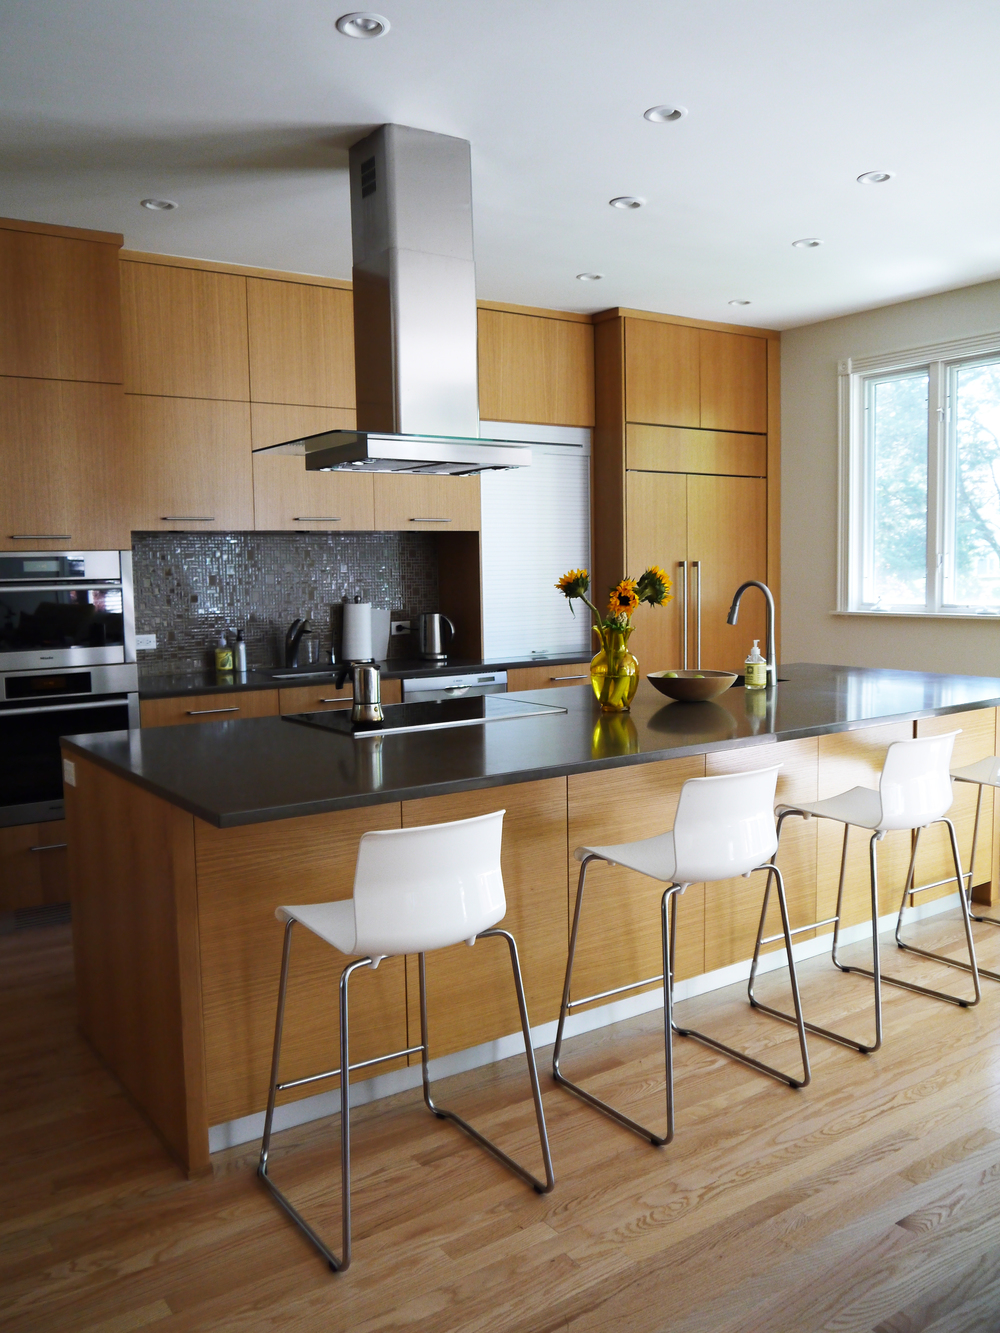 Wilmette Featured 2 Point Perspective Sustainable Architecture Interior Design